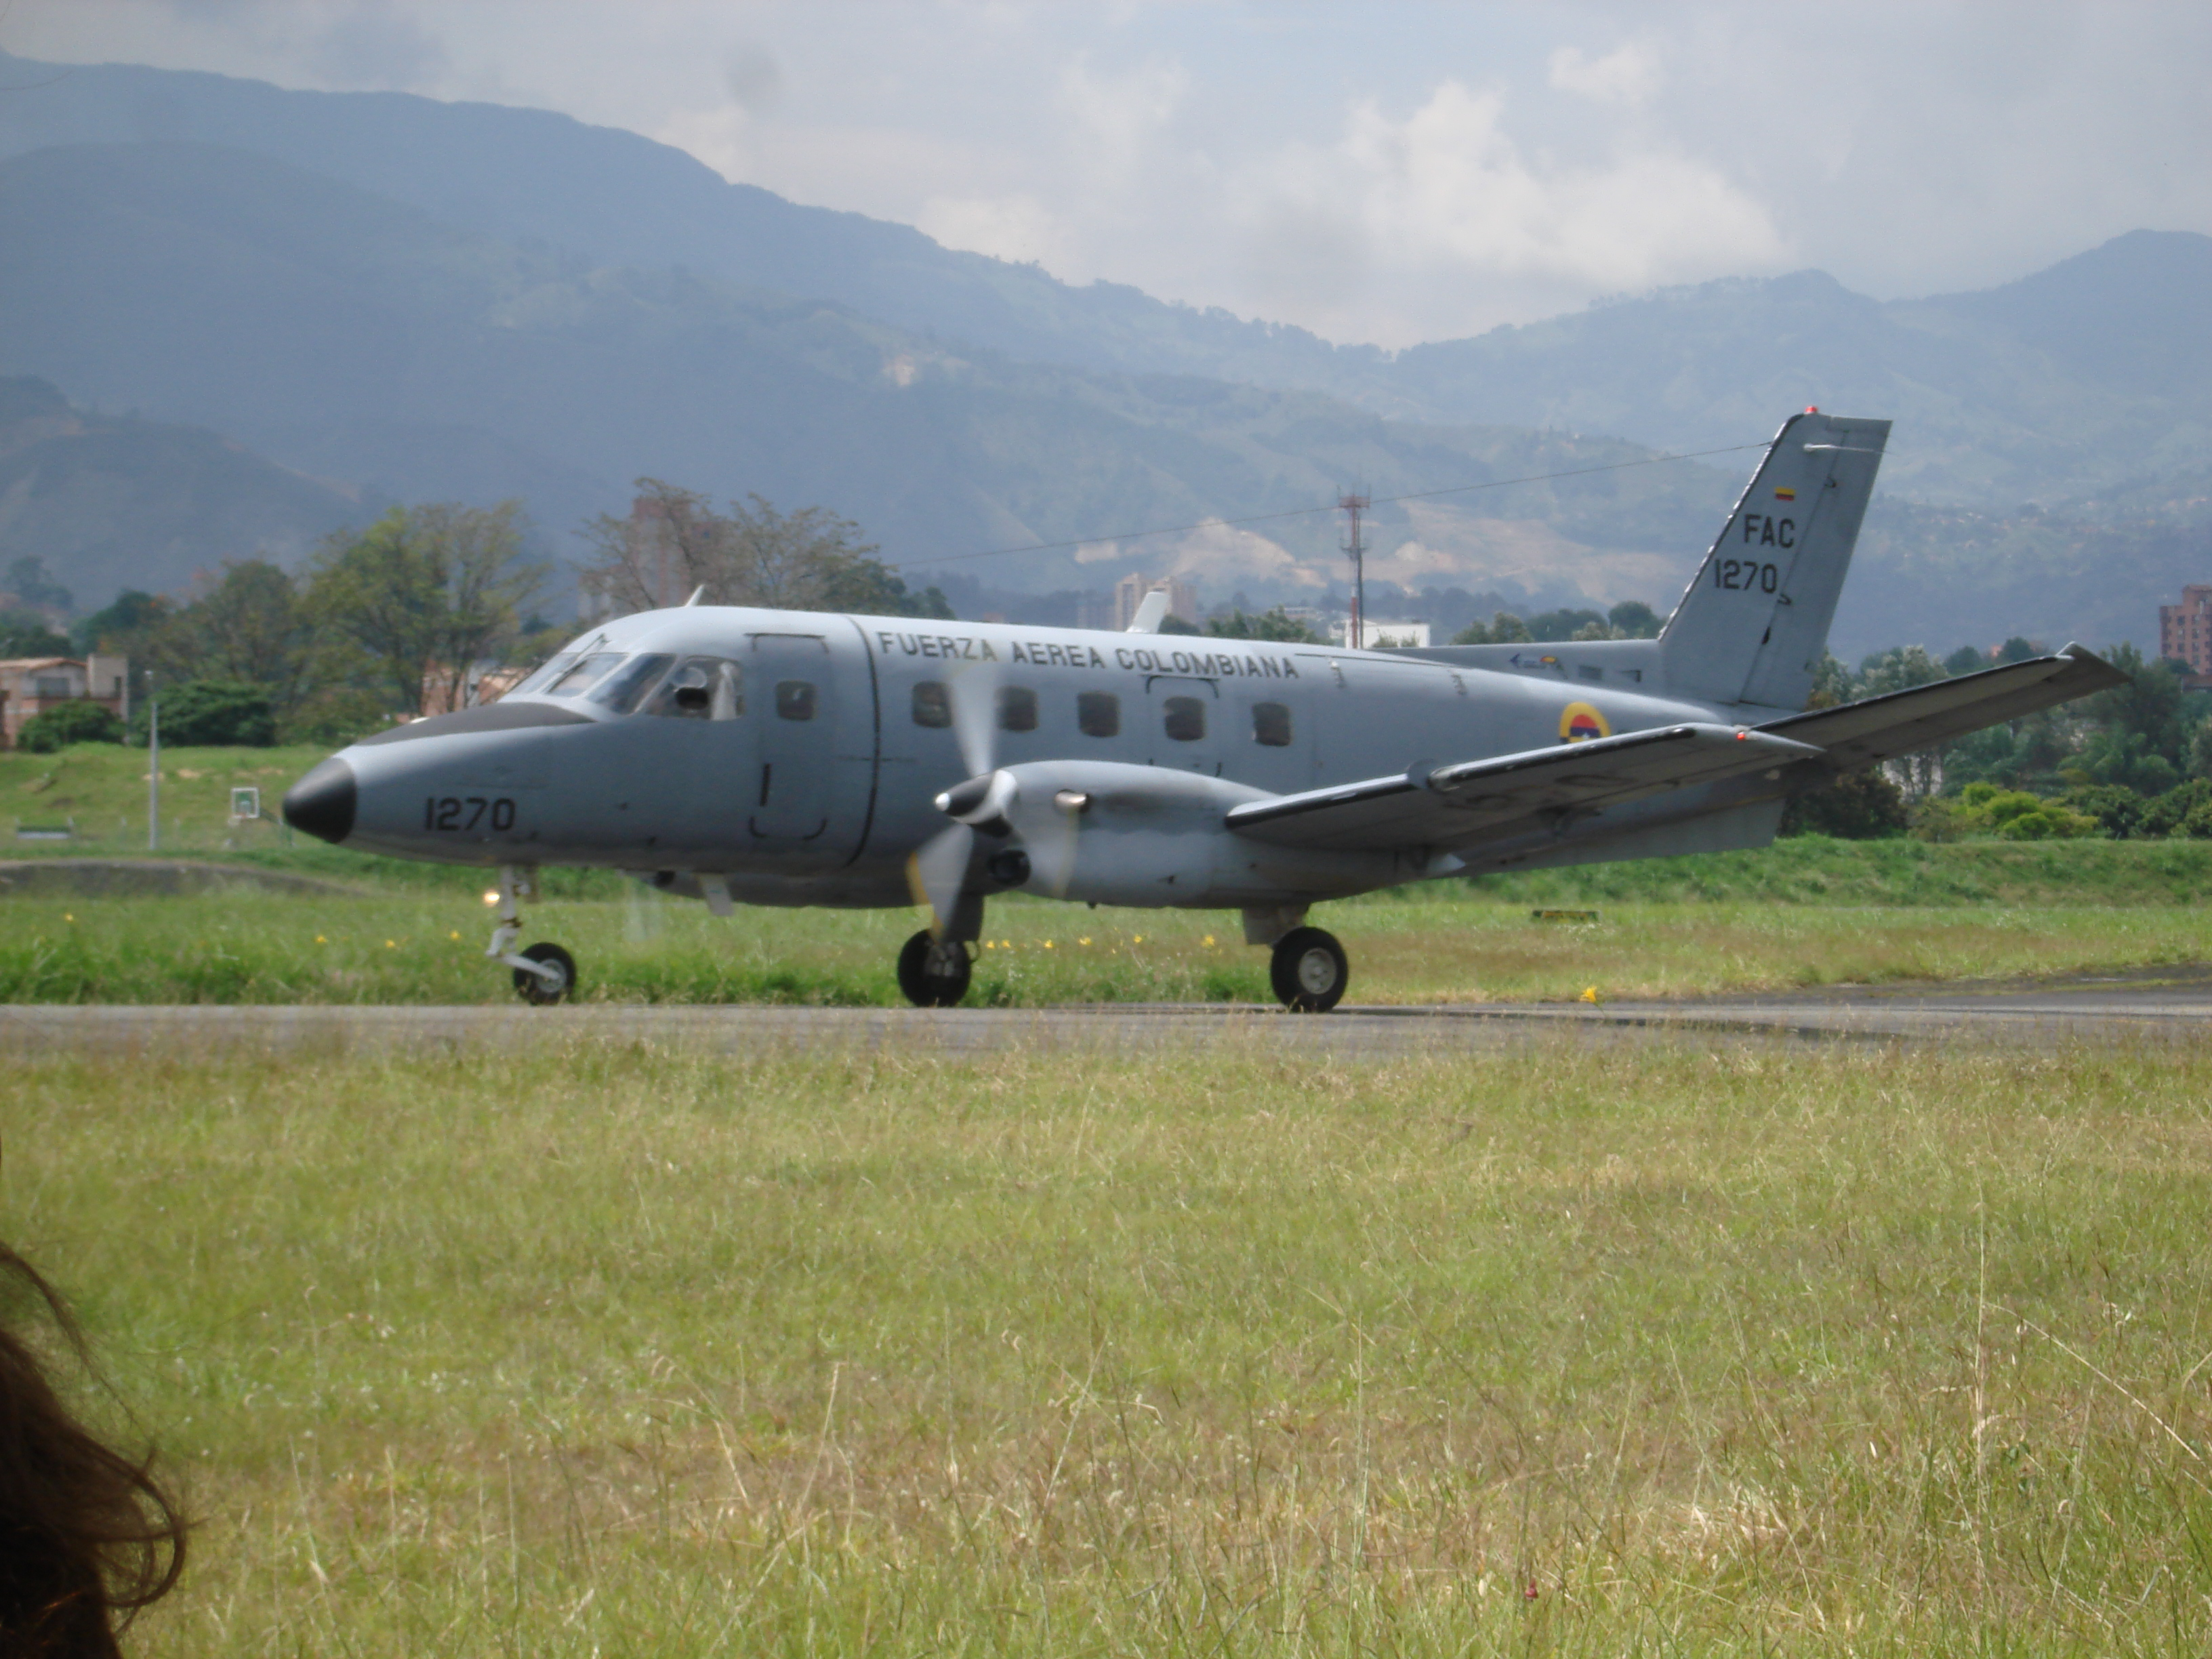 Embraer EMB-110 Bandeirante previous